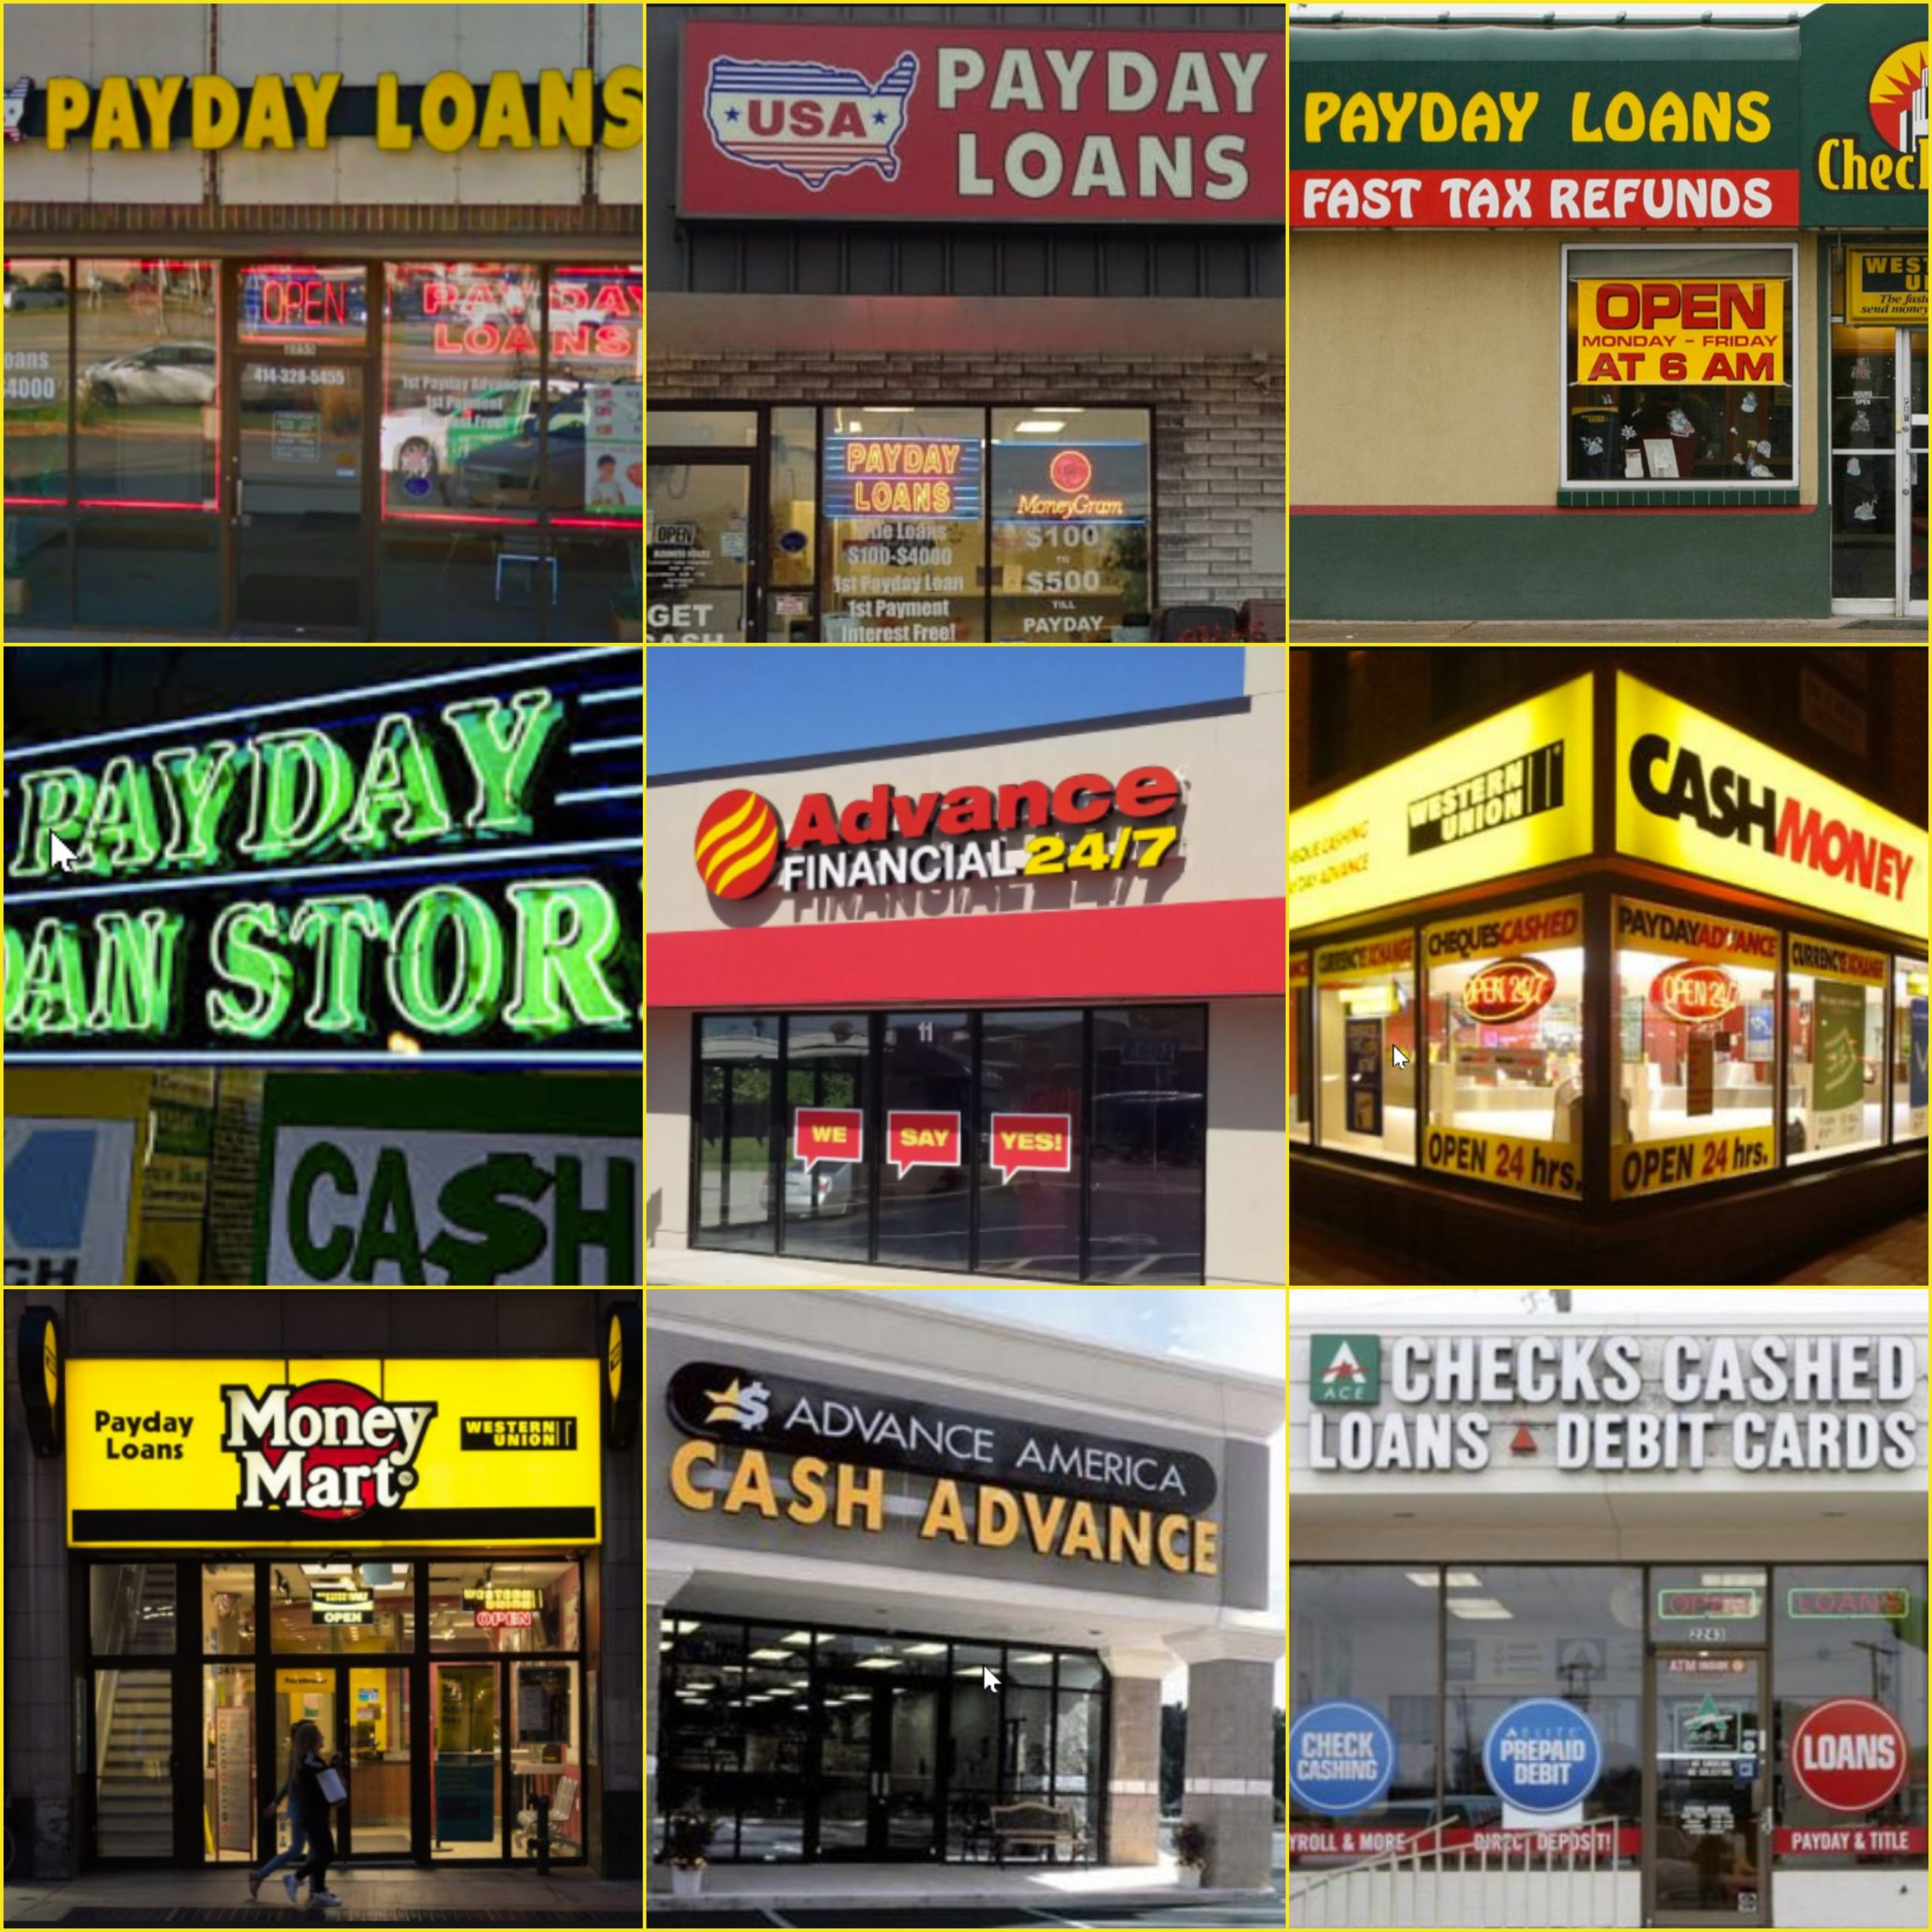 The 7 key benefits of taking out payday loans in Ontario